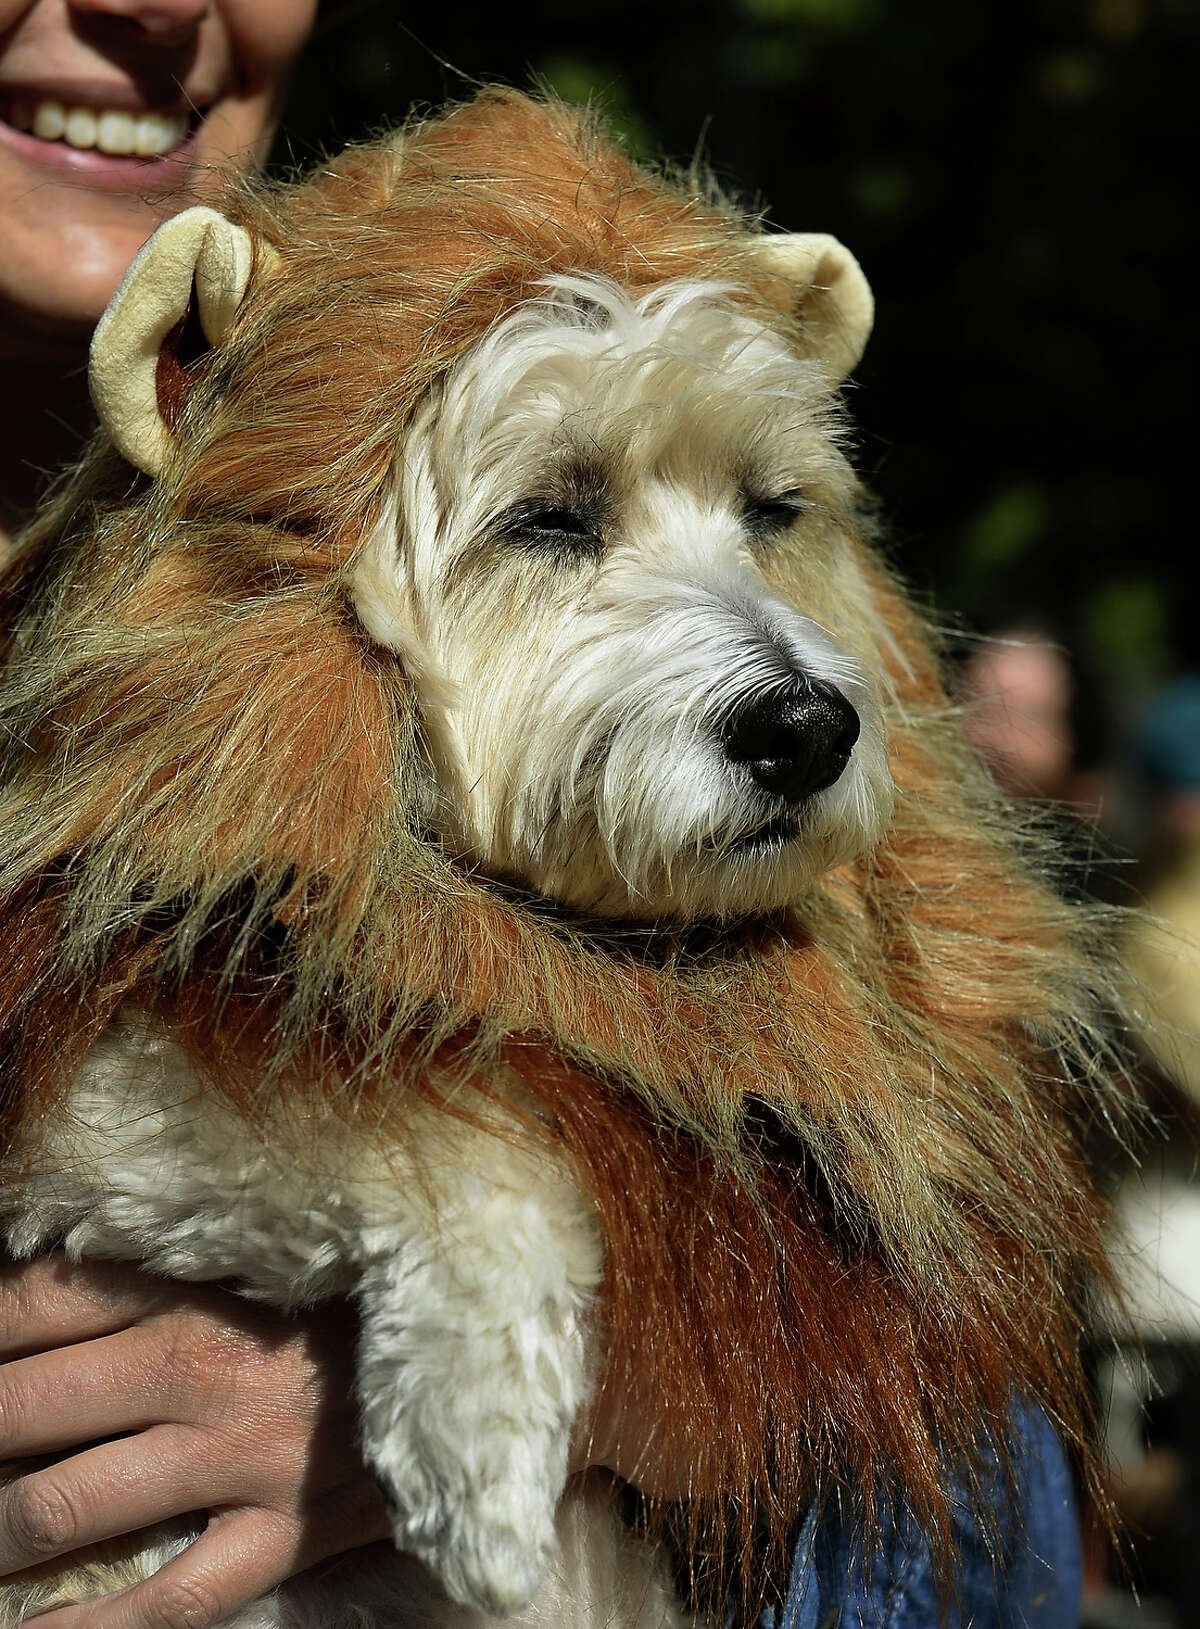 A dog dressed as a lion participates in the 23rd Annual Tompkins Square Halloween Dog Parade on October 26, 2013 in New York City. Thousands of spectators gather in Tompkins Square Park to watch hundreds of masquerading dogs in the country's largest Halloween Dog Parade.